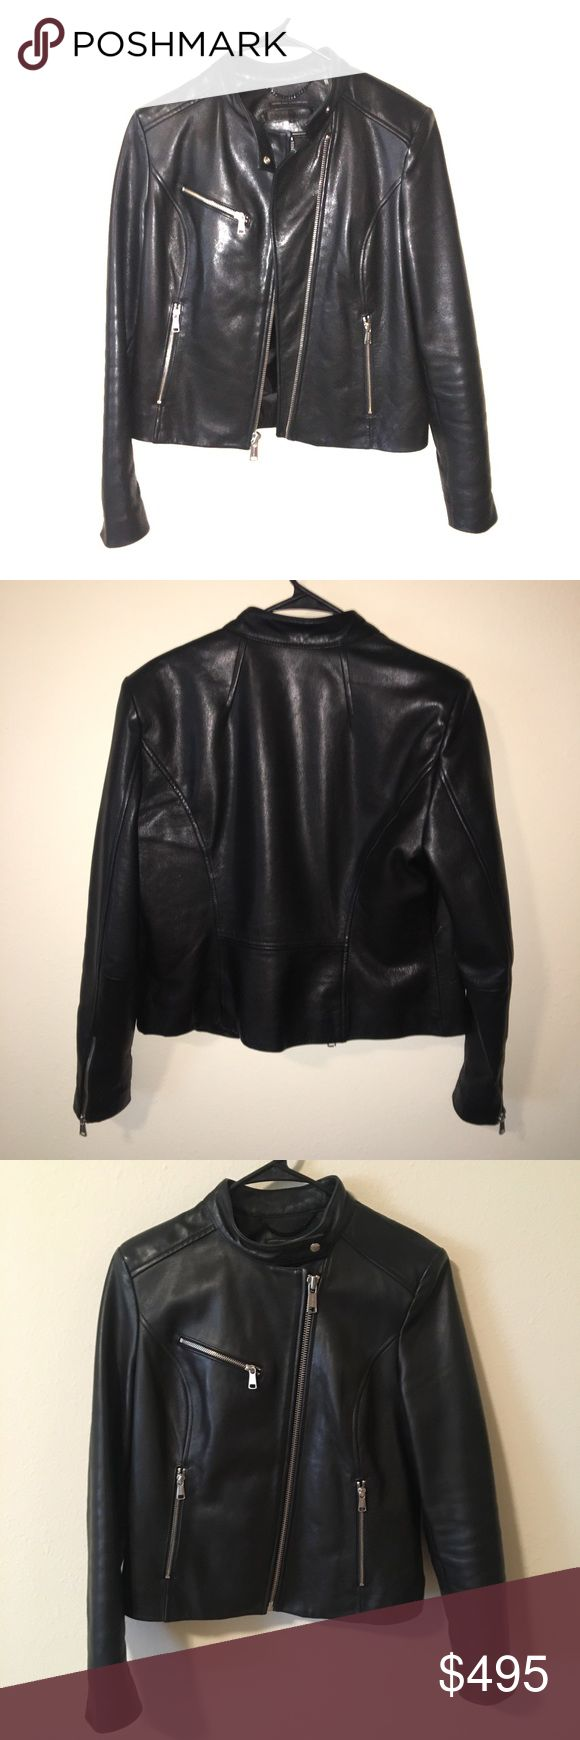 Andrew Marc x Richard Chai Leather Jacket Excellent used condition/like new. Authentic 100% leather designer luxury moto jacket. Silver zippers with Andrew Marc imprinted. Thick leather to keep you warm and dry in all weather. I absolutely adore this jacket but need to downsize. Andrew Marc Jackets & Coats